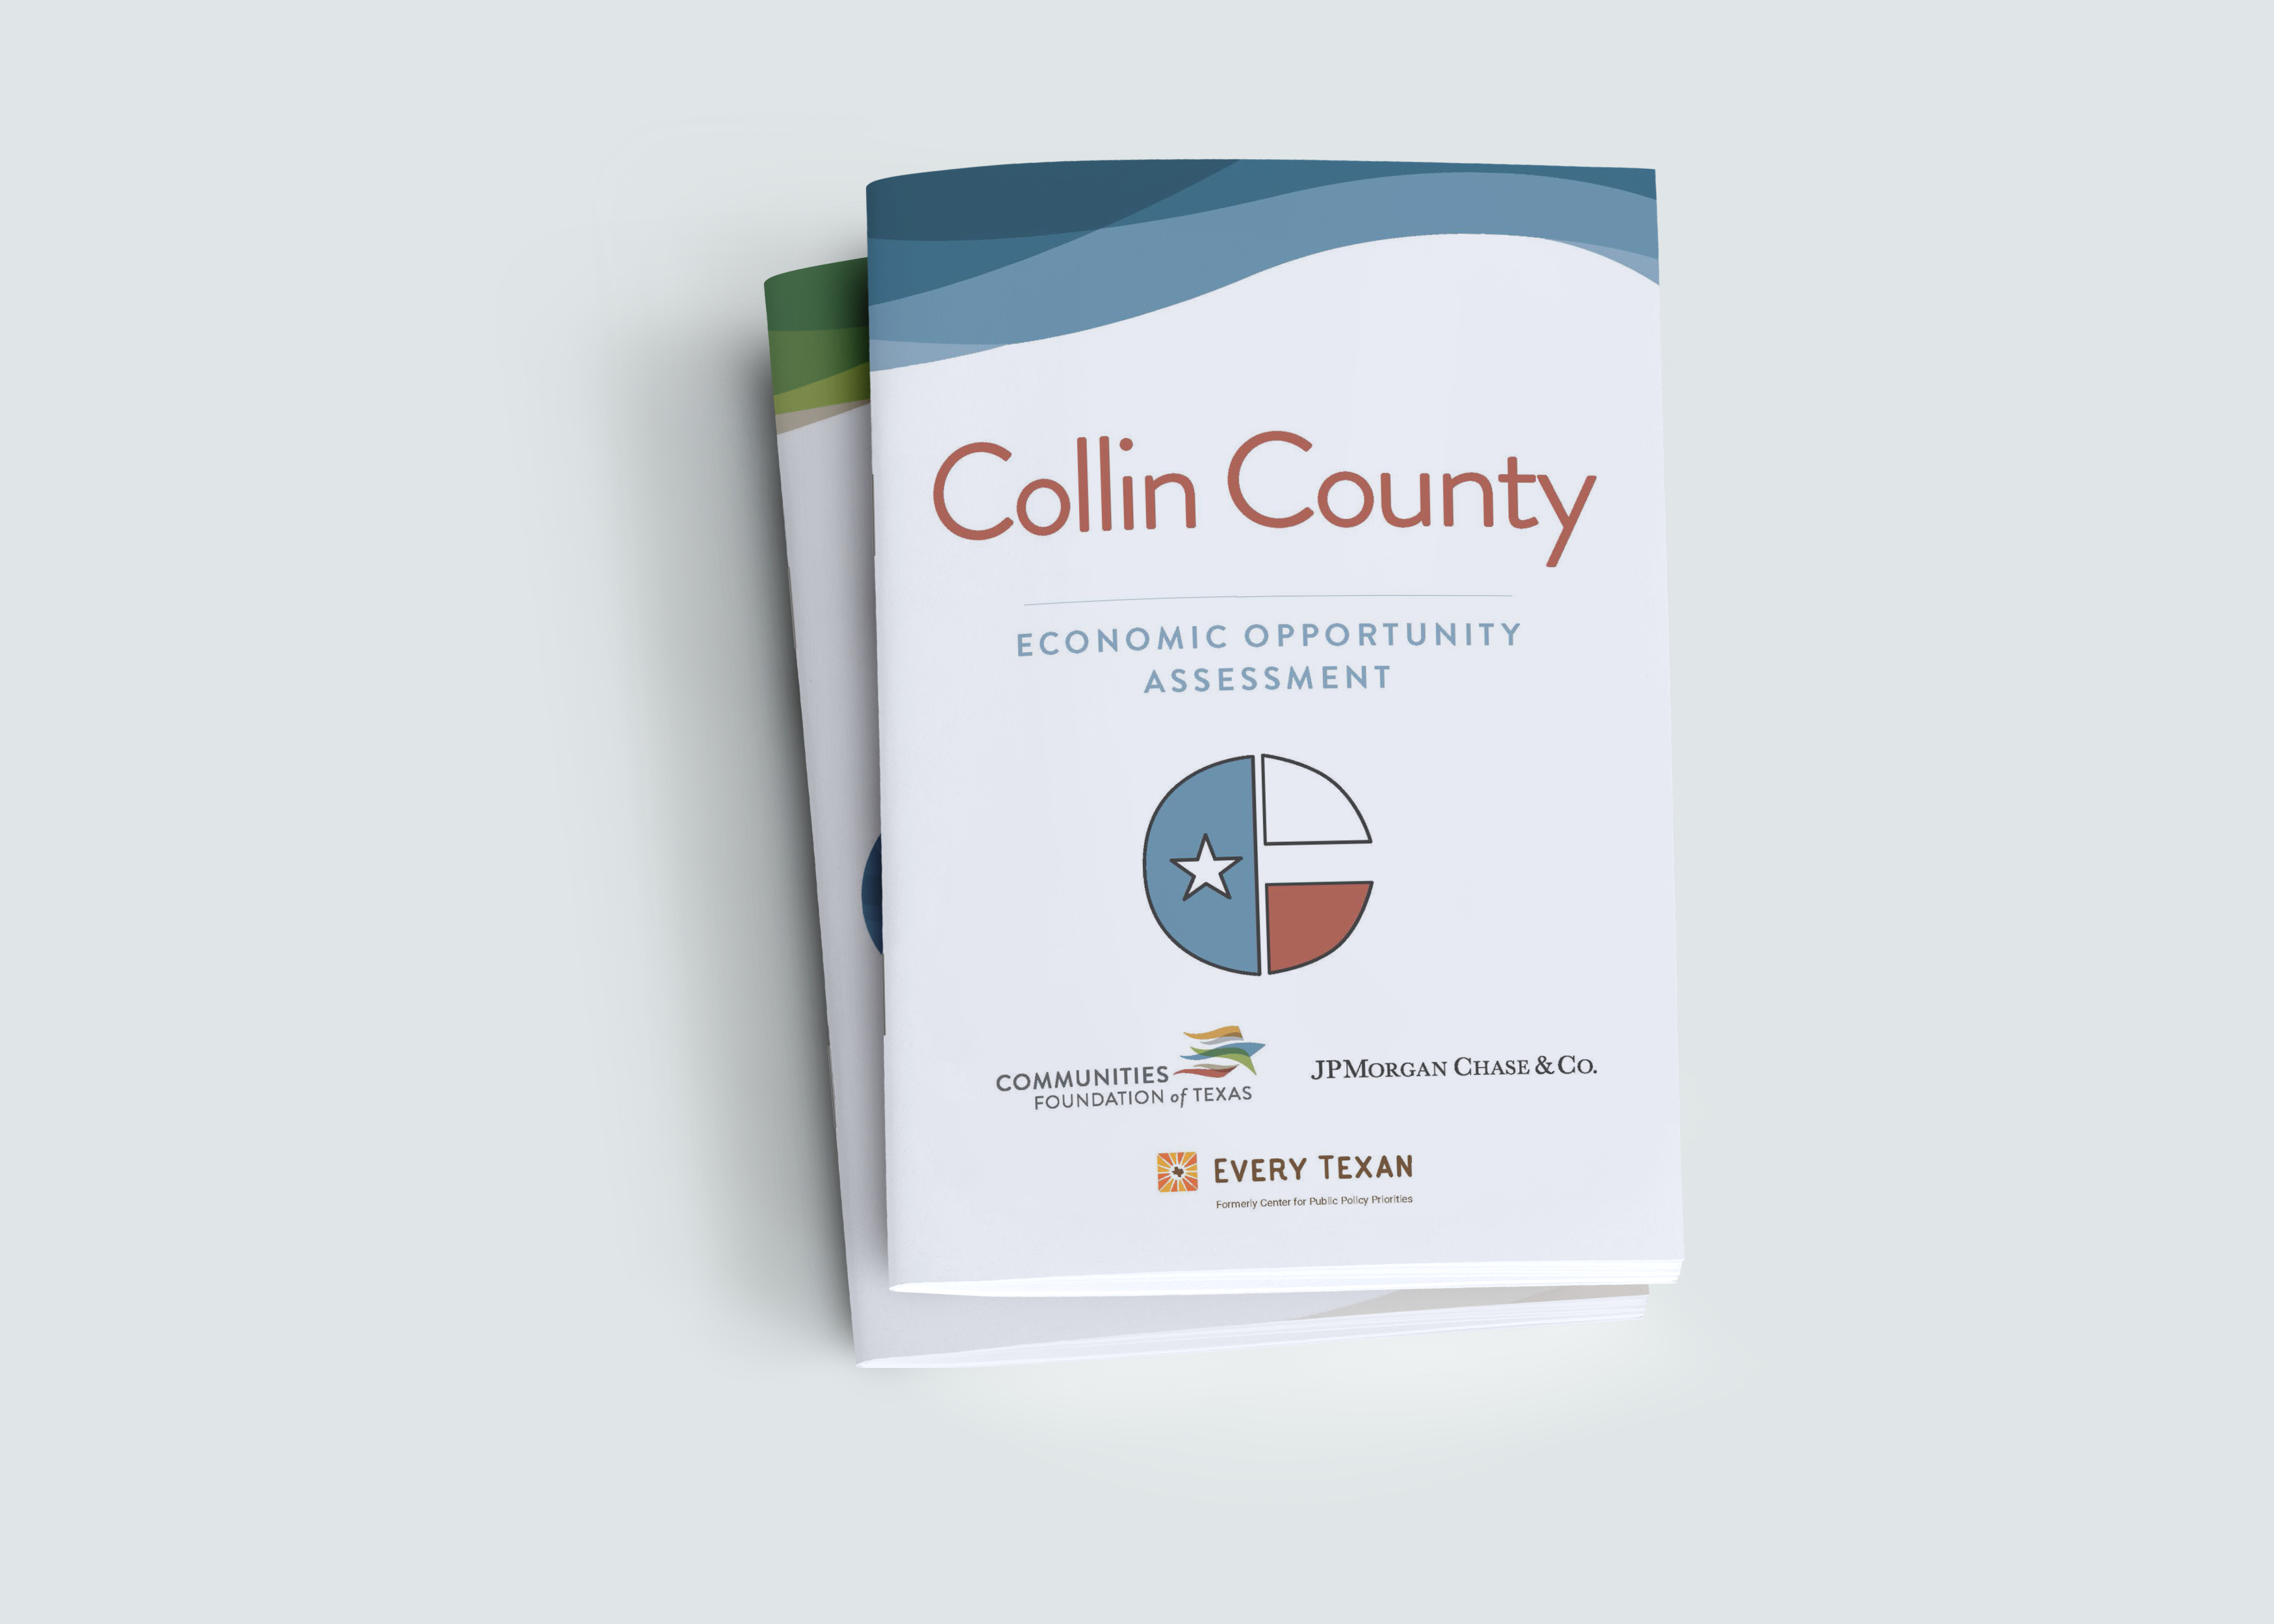 Collin County Economic Opportunity Assessment